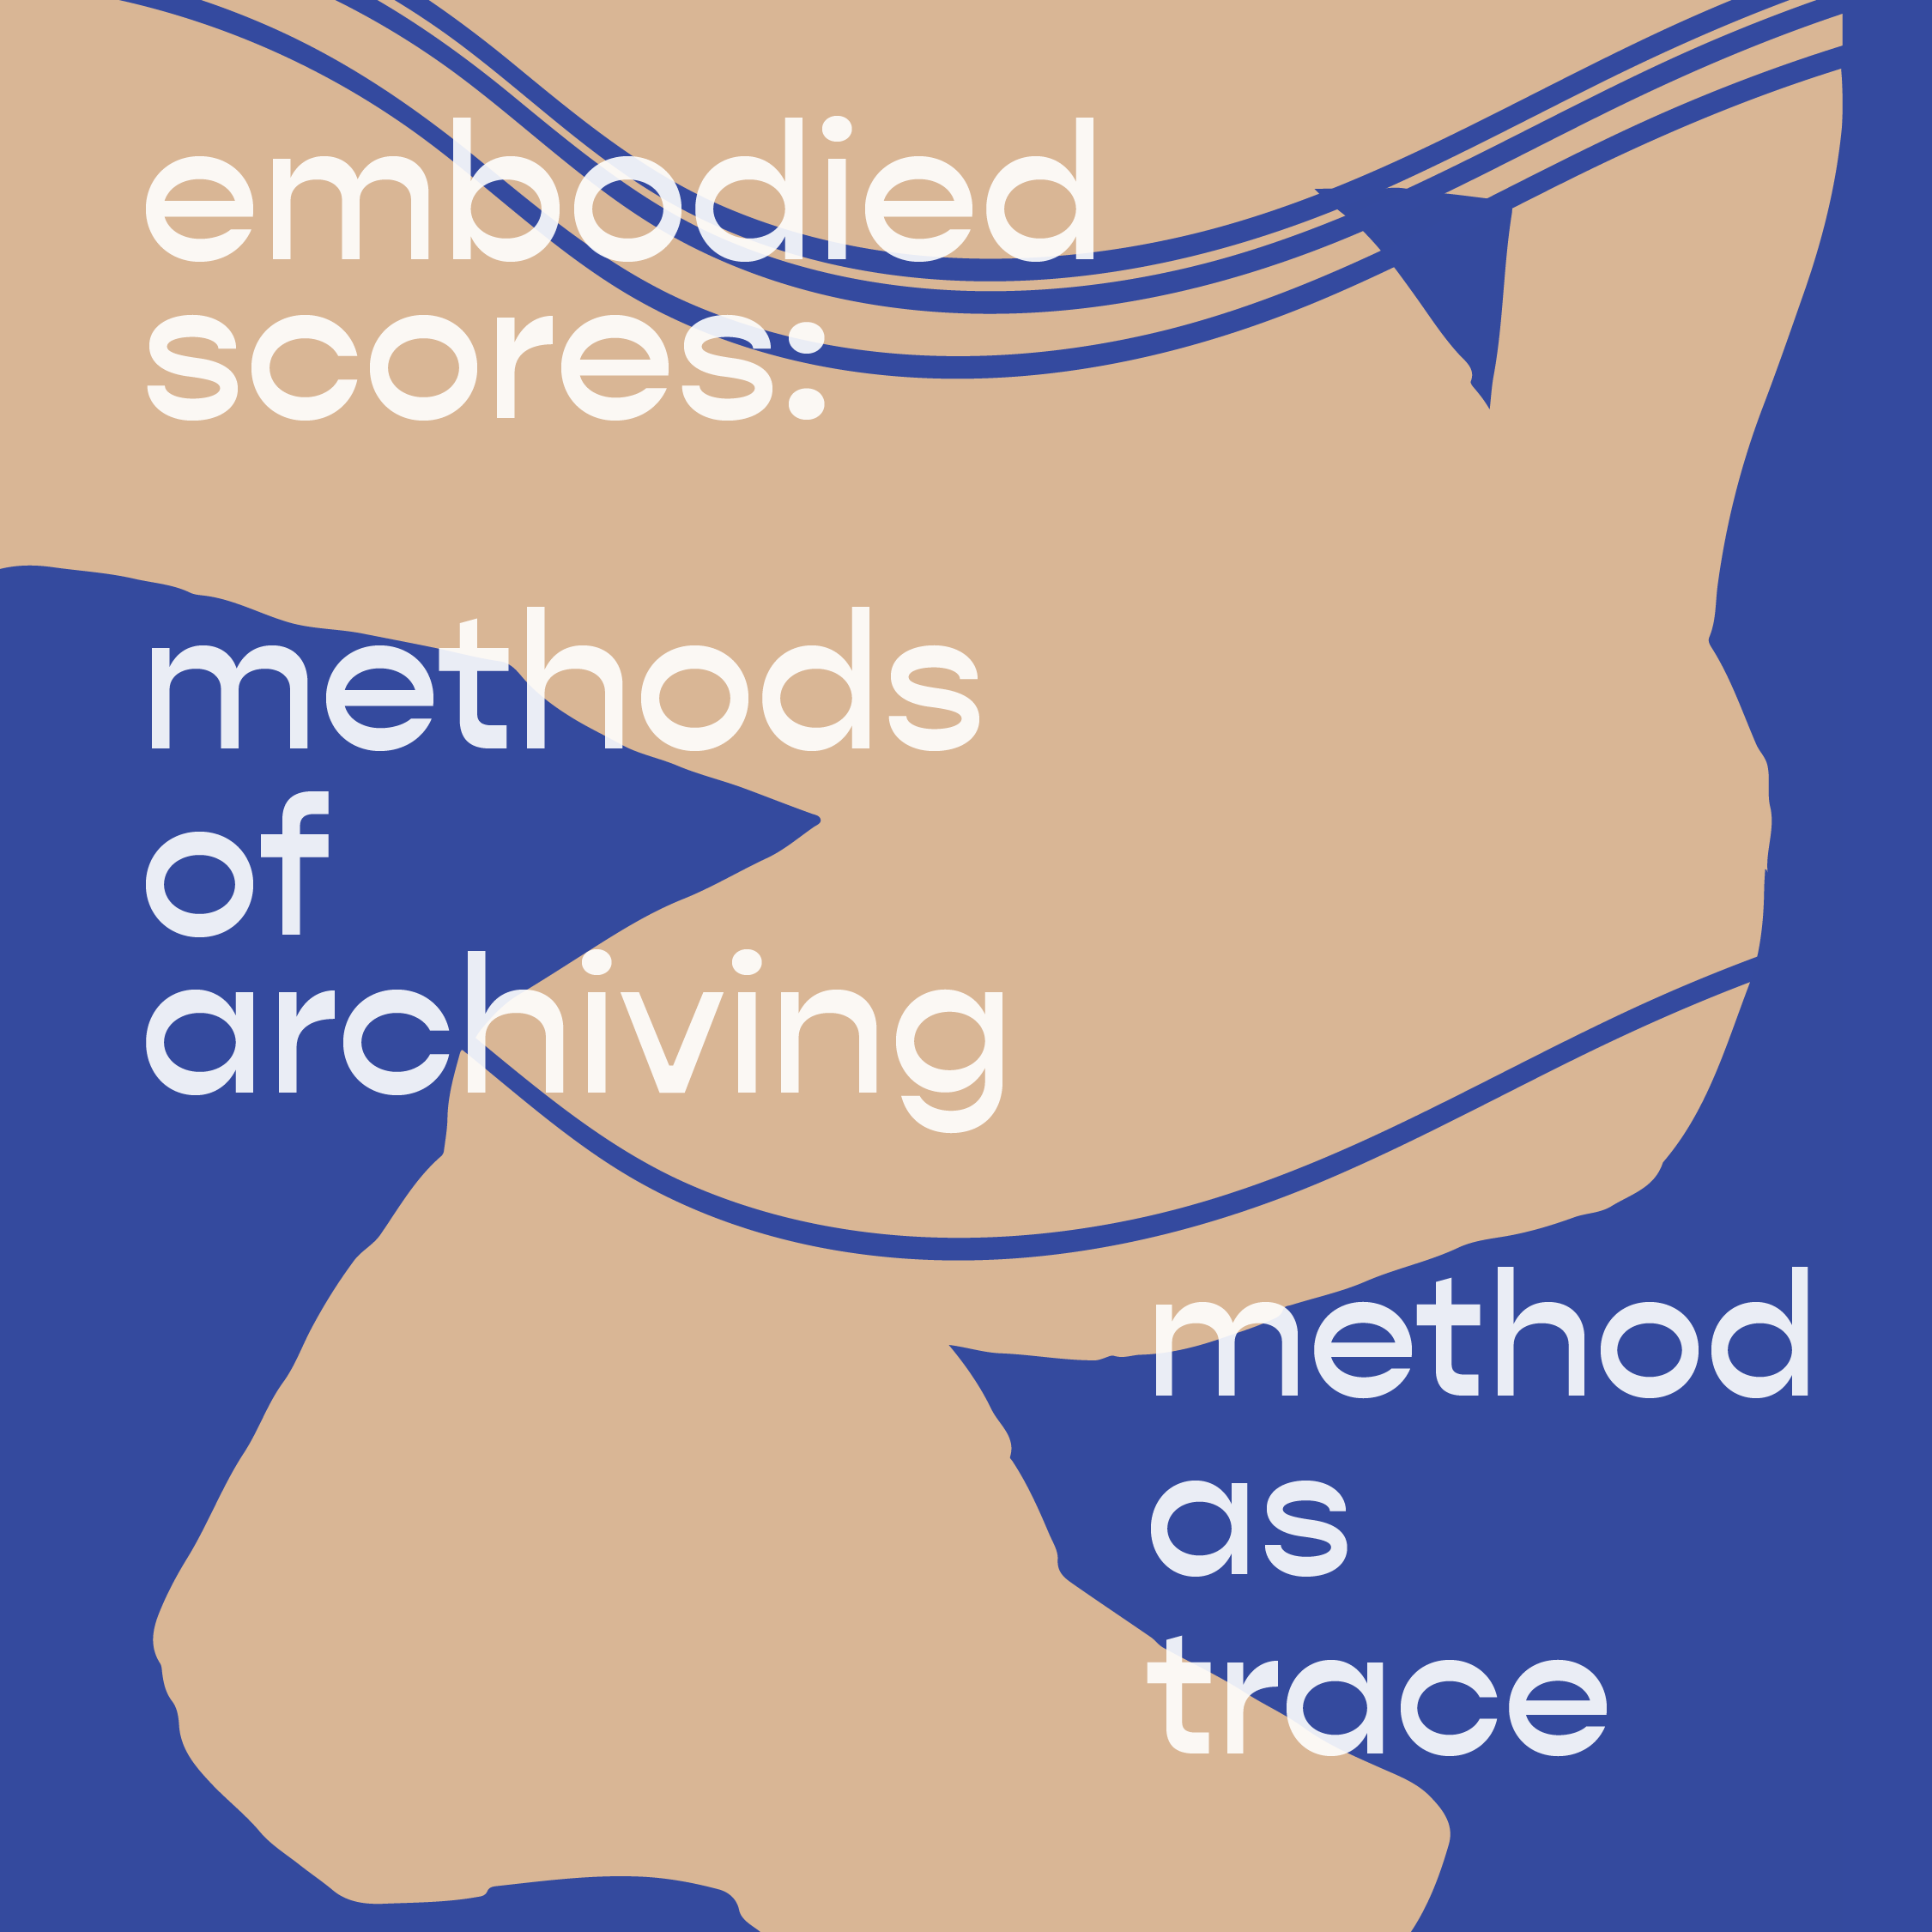 embodied_scores_website_event_thumbs-02.png